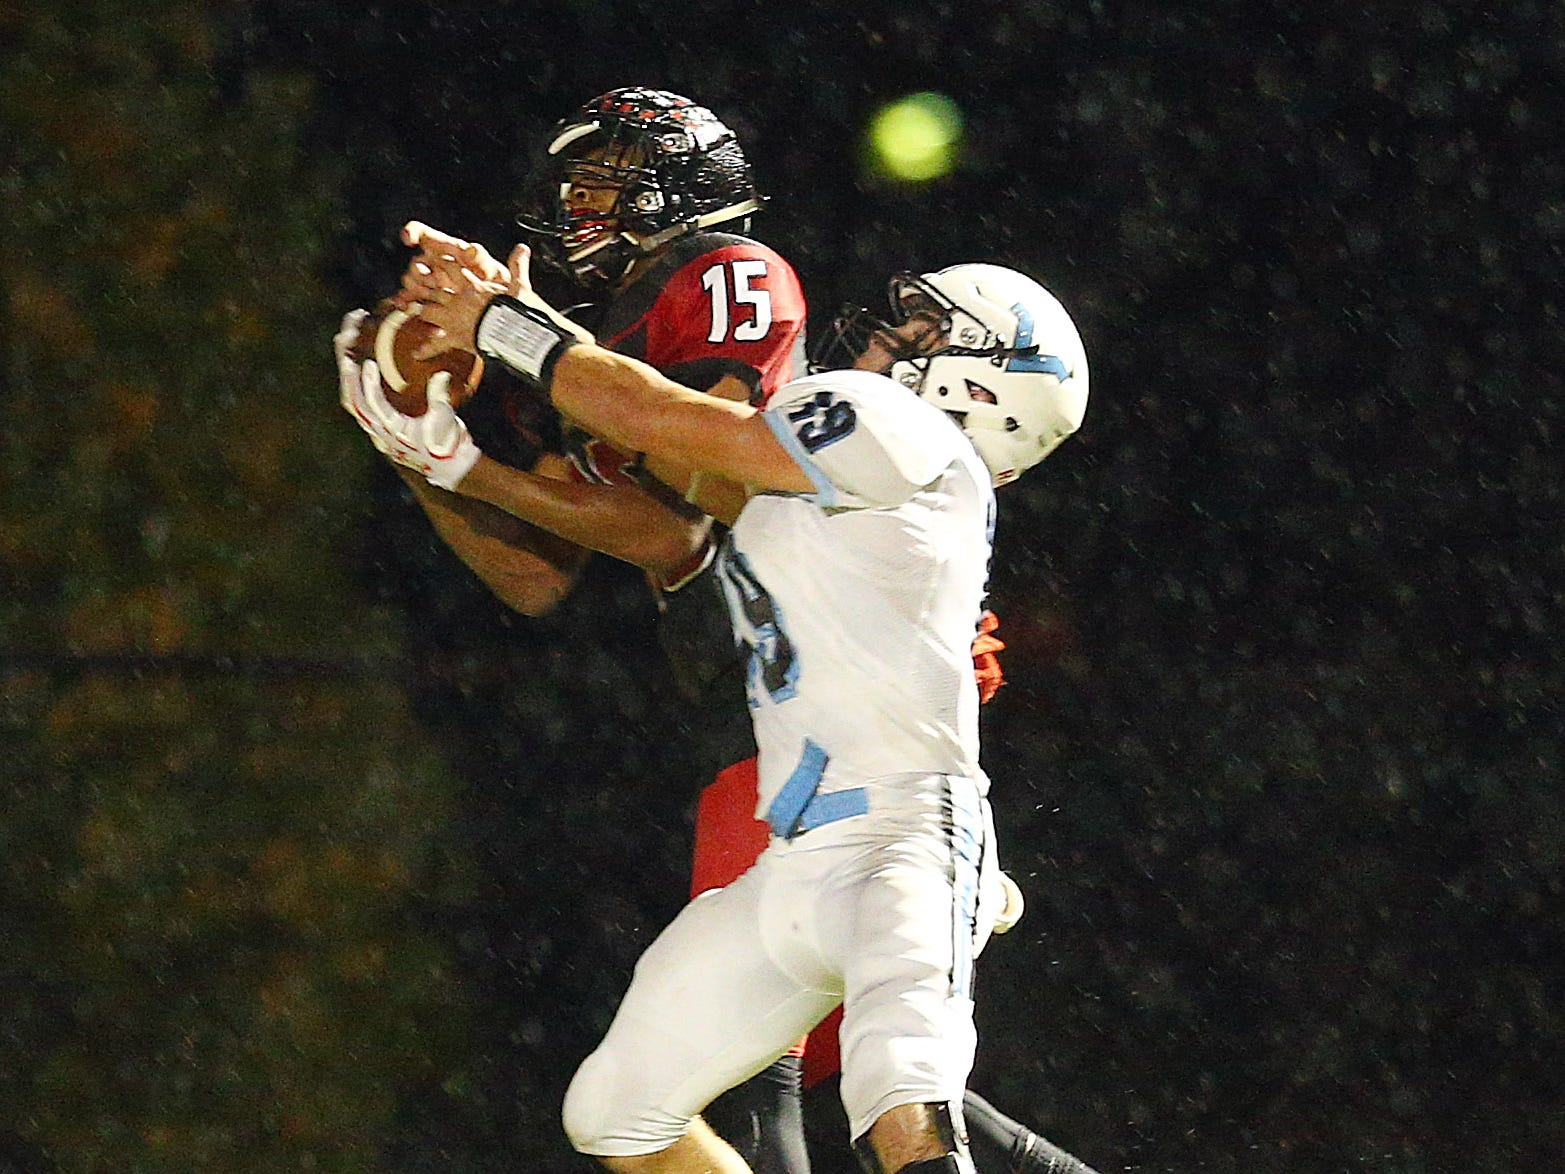 Rahway's Mark Bails pulls in a TD pass despite great defense by Parsippany Hills Kevin Minardi during their NJSIAA North 2 Group III football quarterfinal at Rahway River Park. November 2, 2018, Rahway, NJ